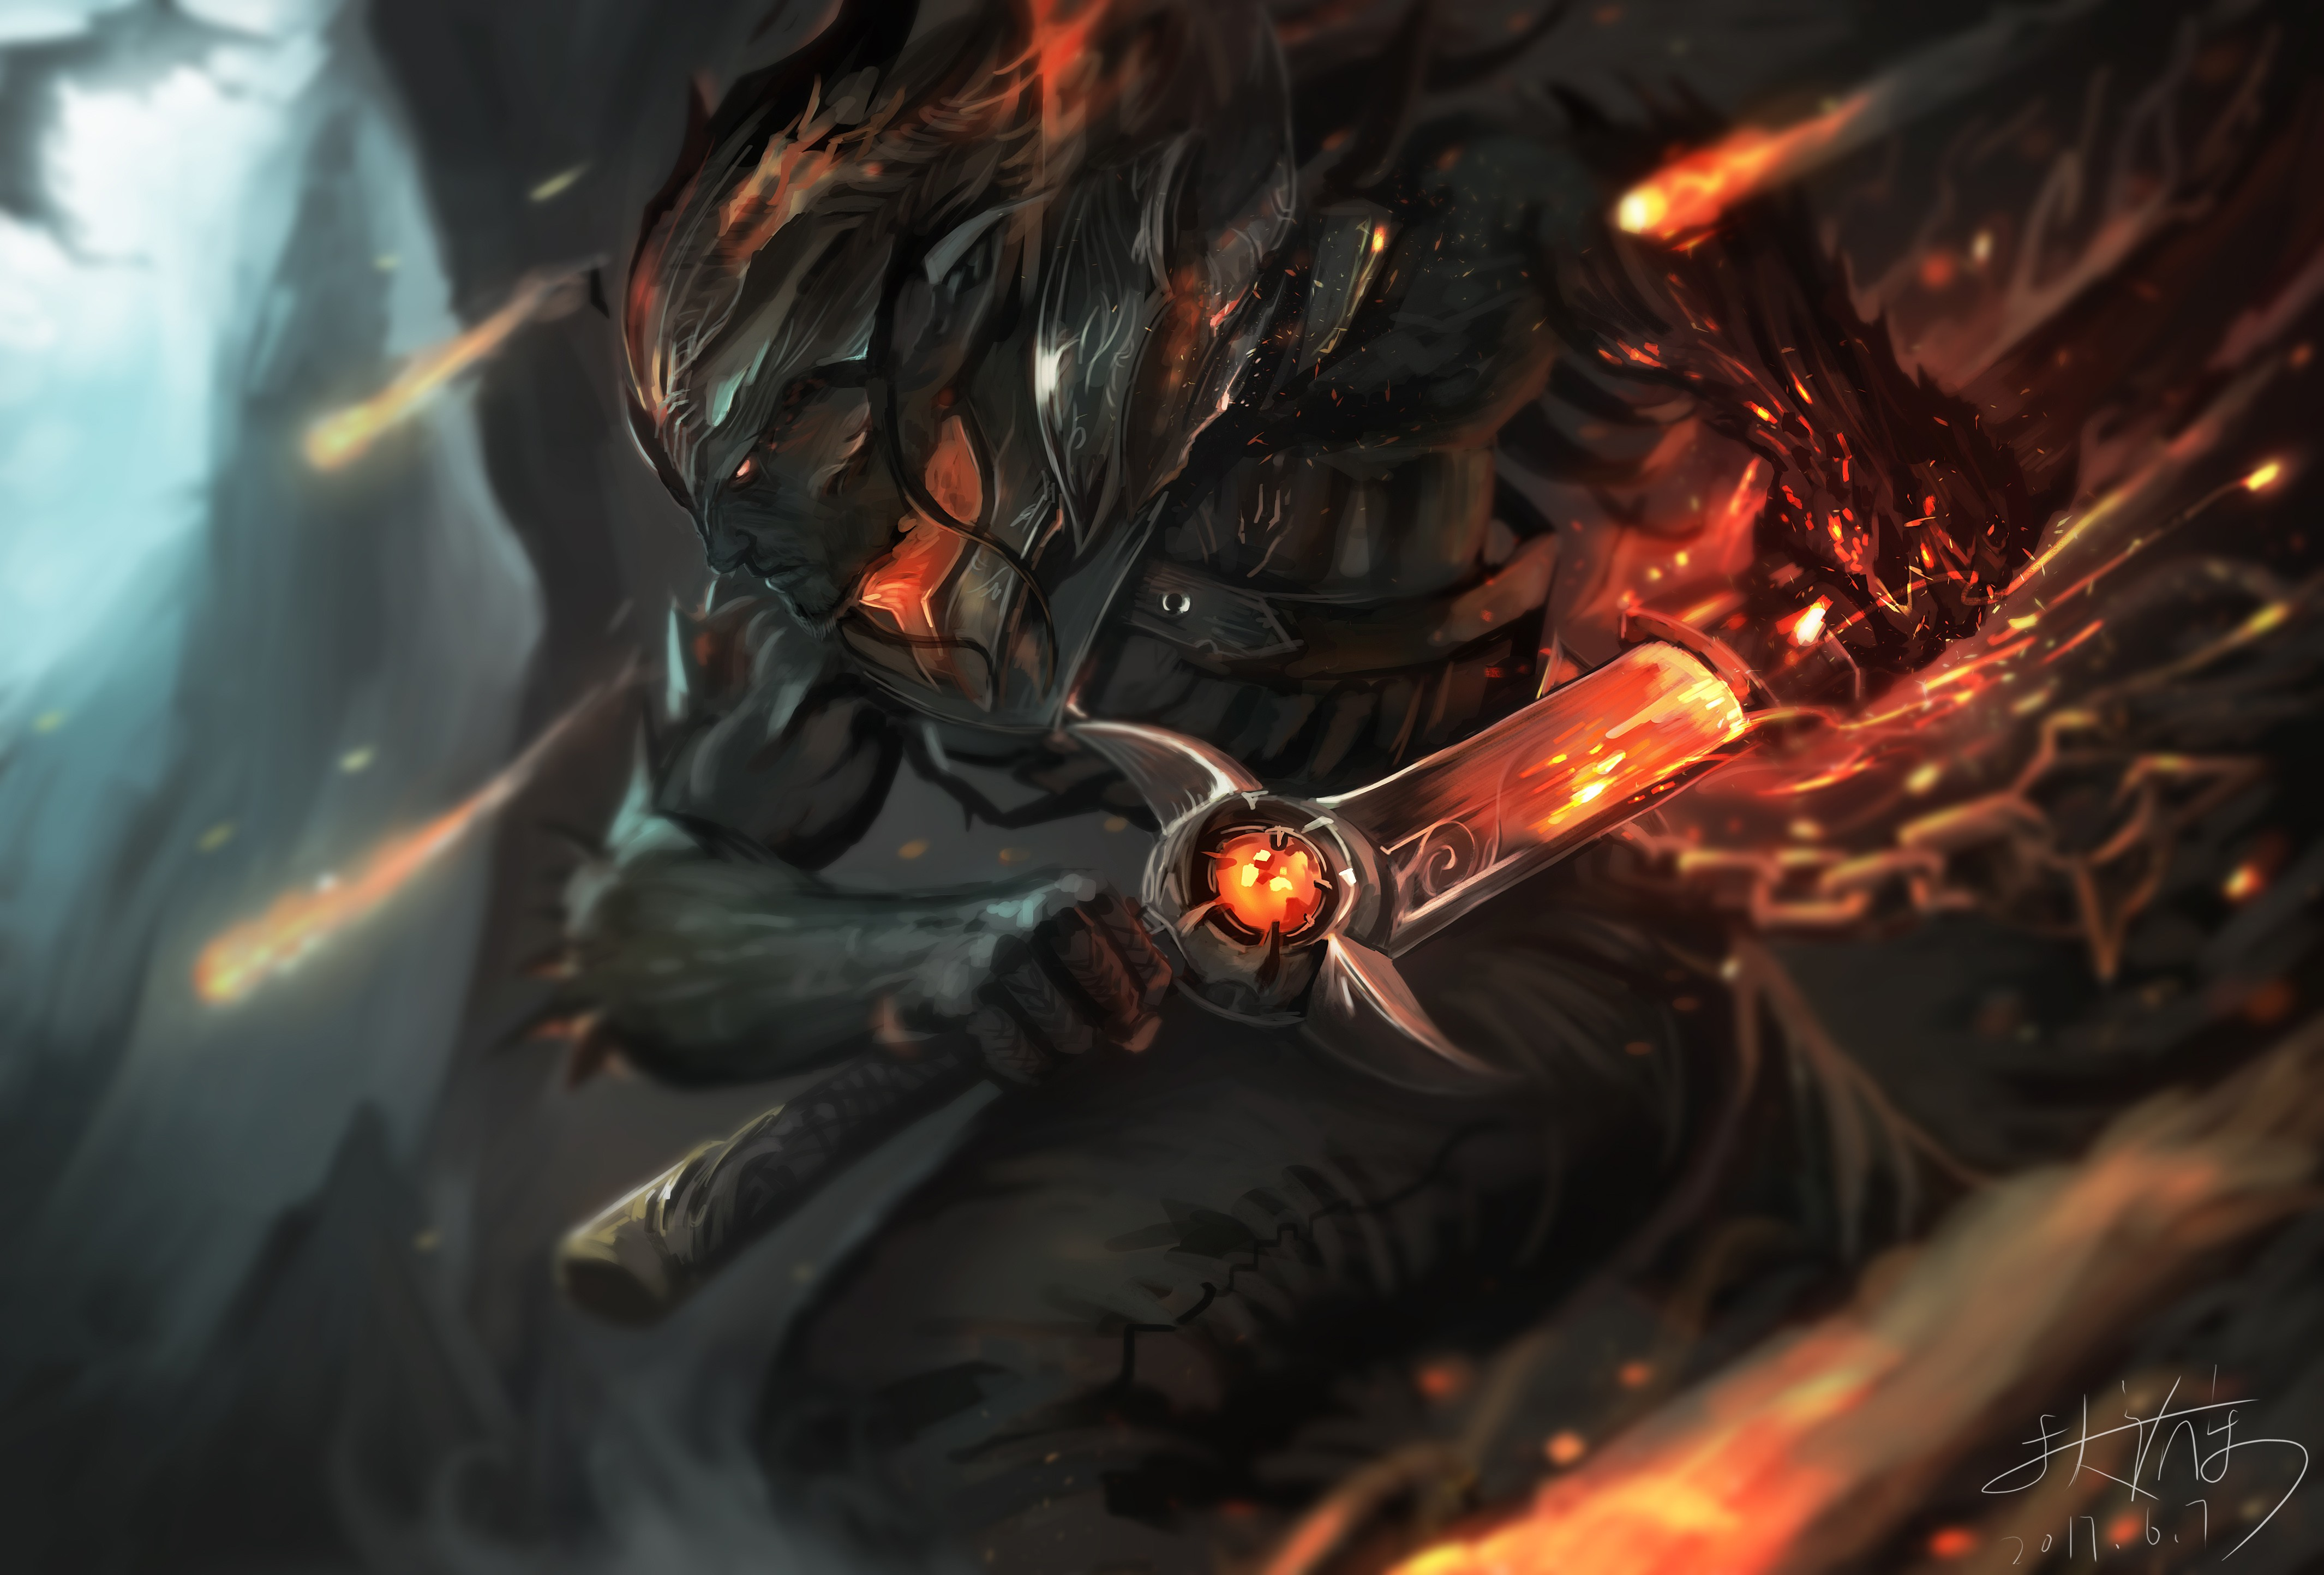 Nightbringer Yasuo | Wallpapers & Fan Arts | League Of Legends | LoL Stats